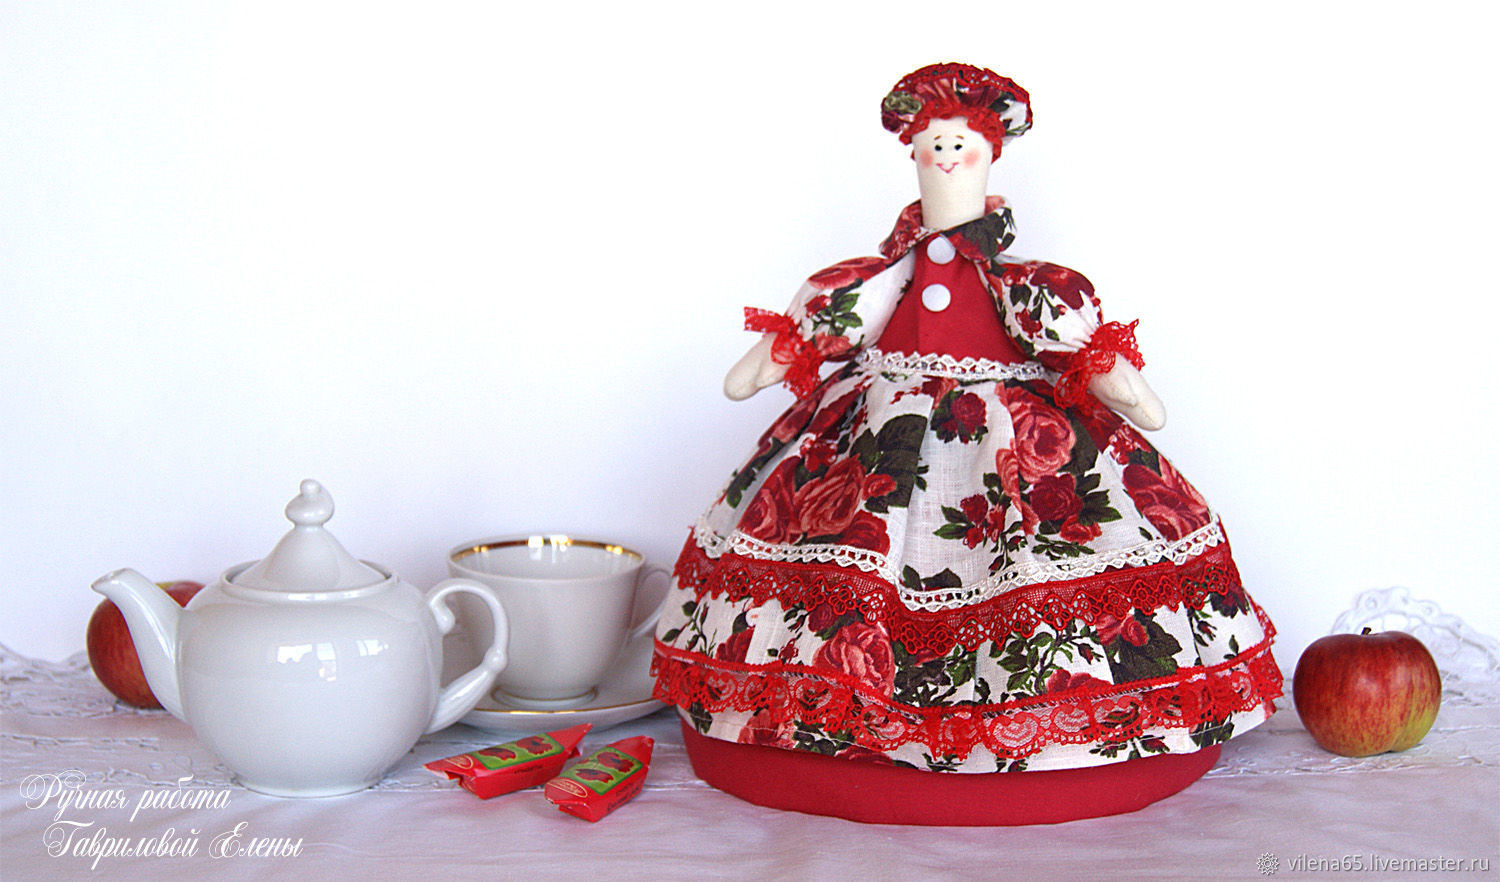 Doll-hot water bottle for teapot Red roses. Gift, kitchen textiles, Teapot cover, Magnitogorsk,  Фото №1